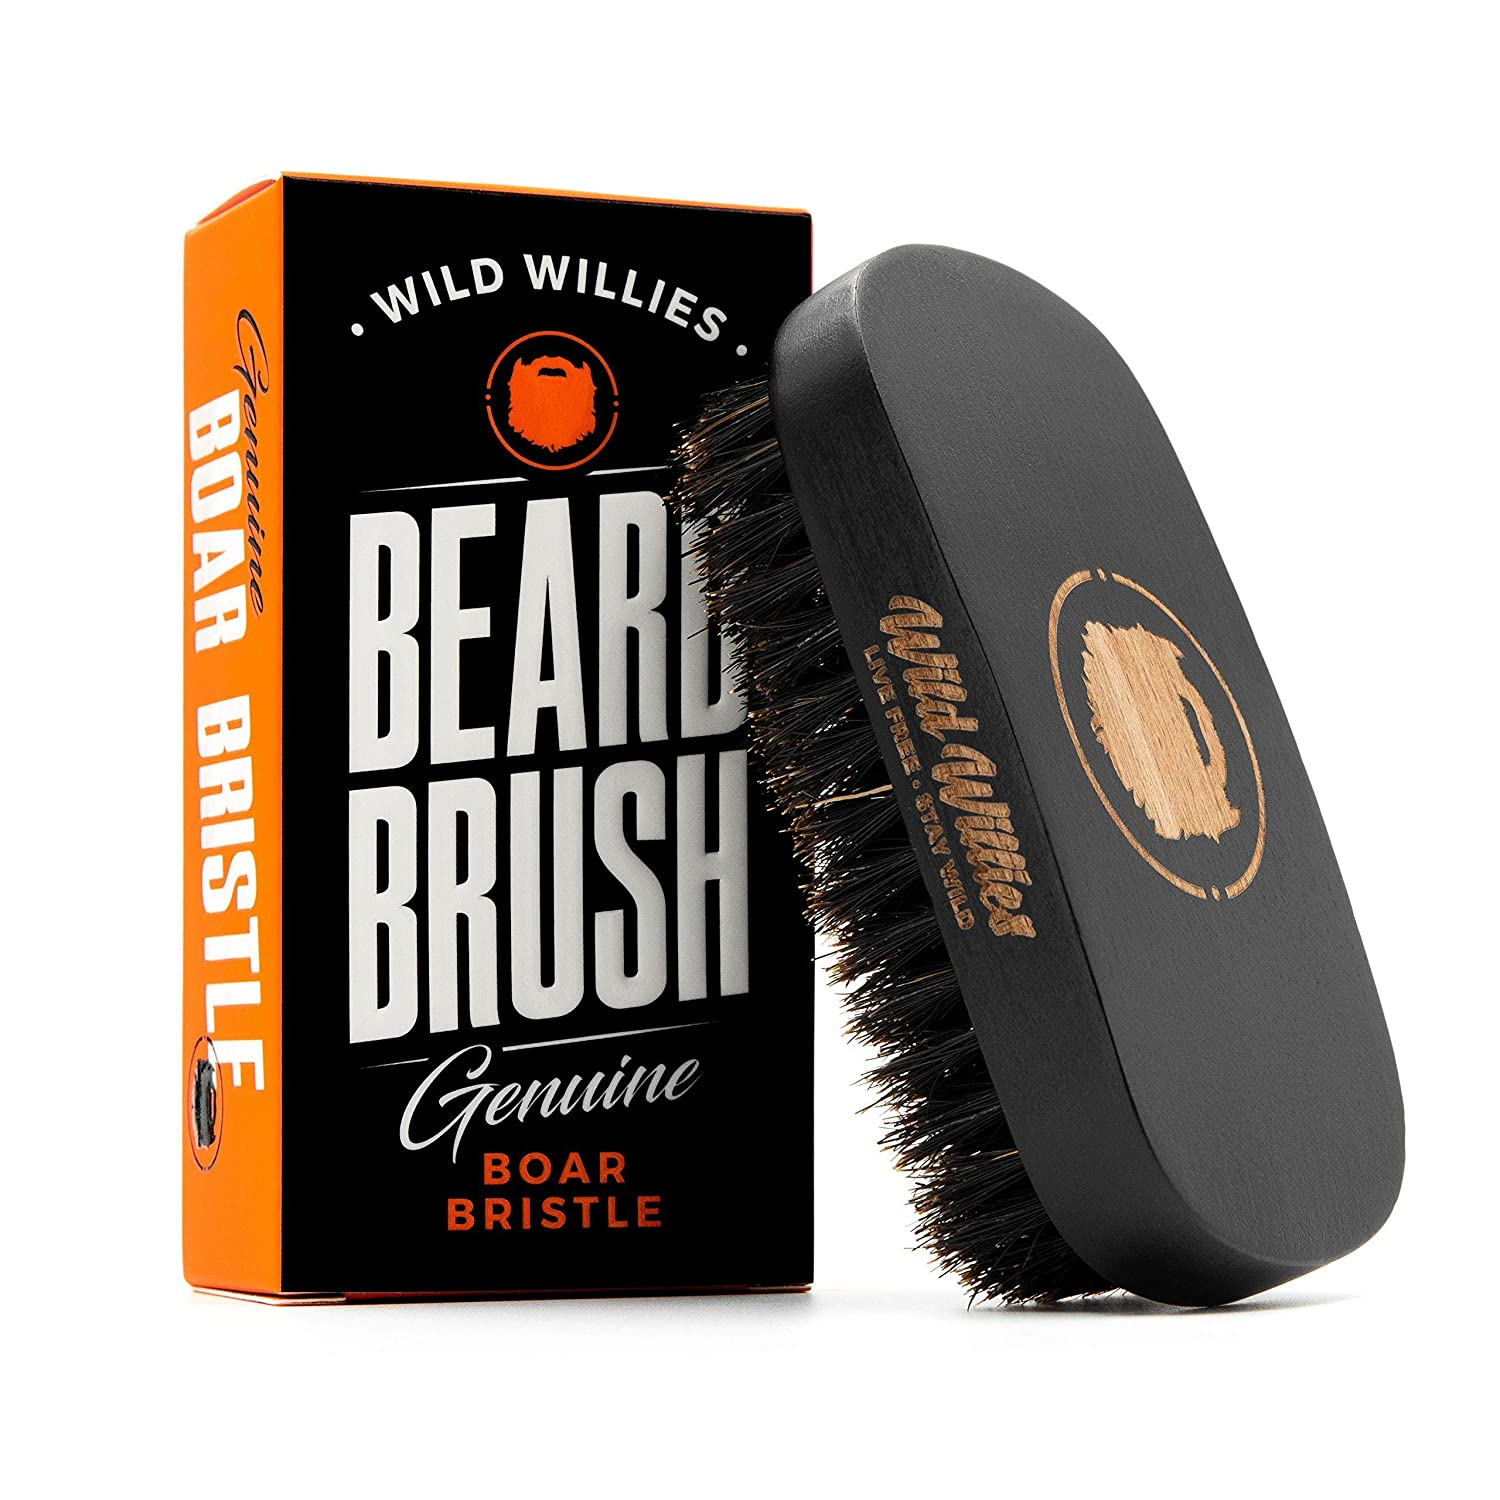 Wild Willies Beard Brush For Men. With for Boar Bristles Max 77% OFF Natural Las Vegas Mall